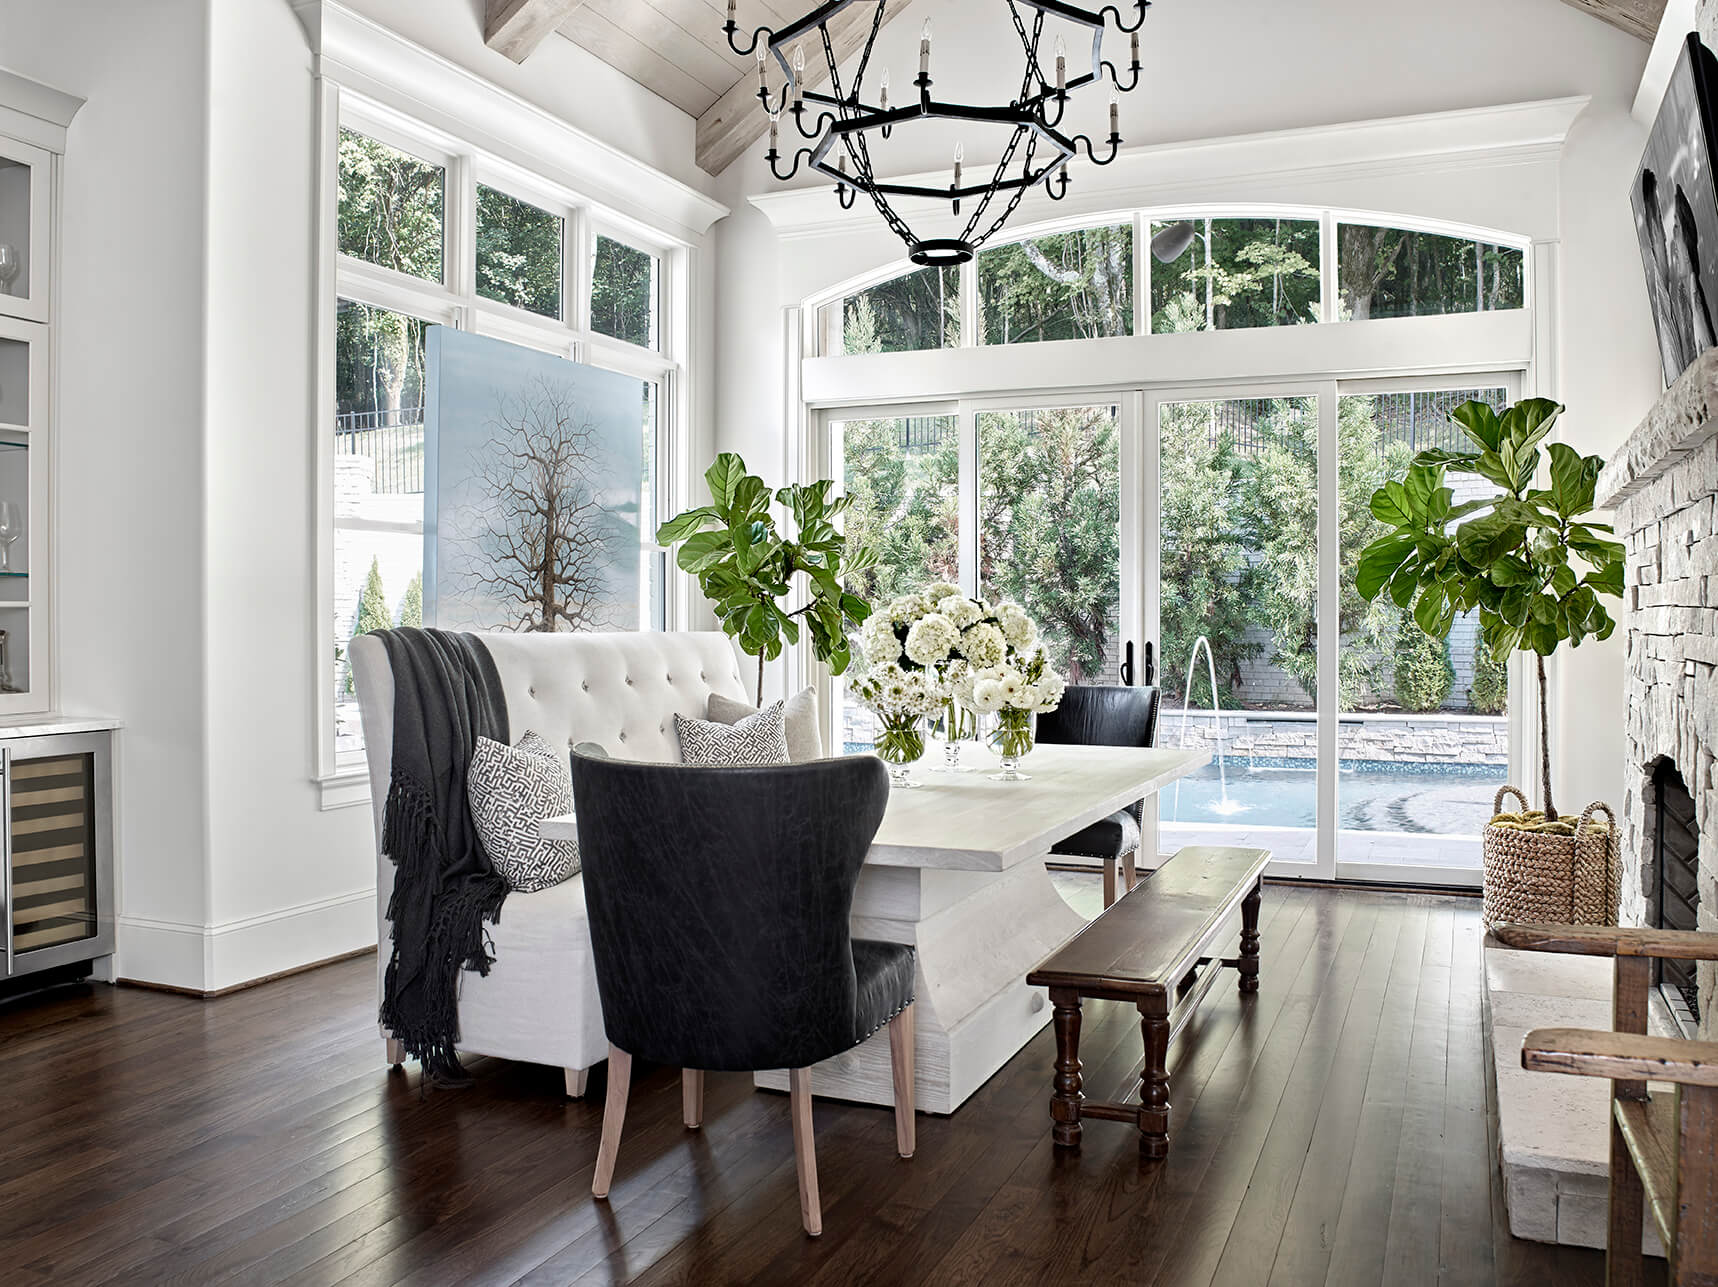 Dining area with dark wood floors with white and gray furniture - Rustic Contemporary Bureau Interior Design Nashville TN